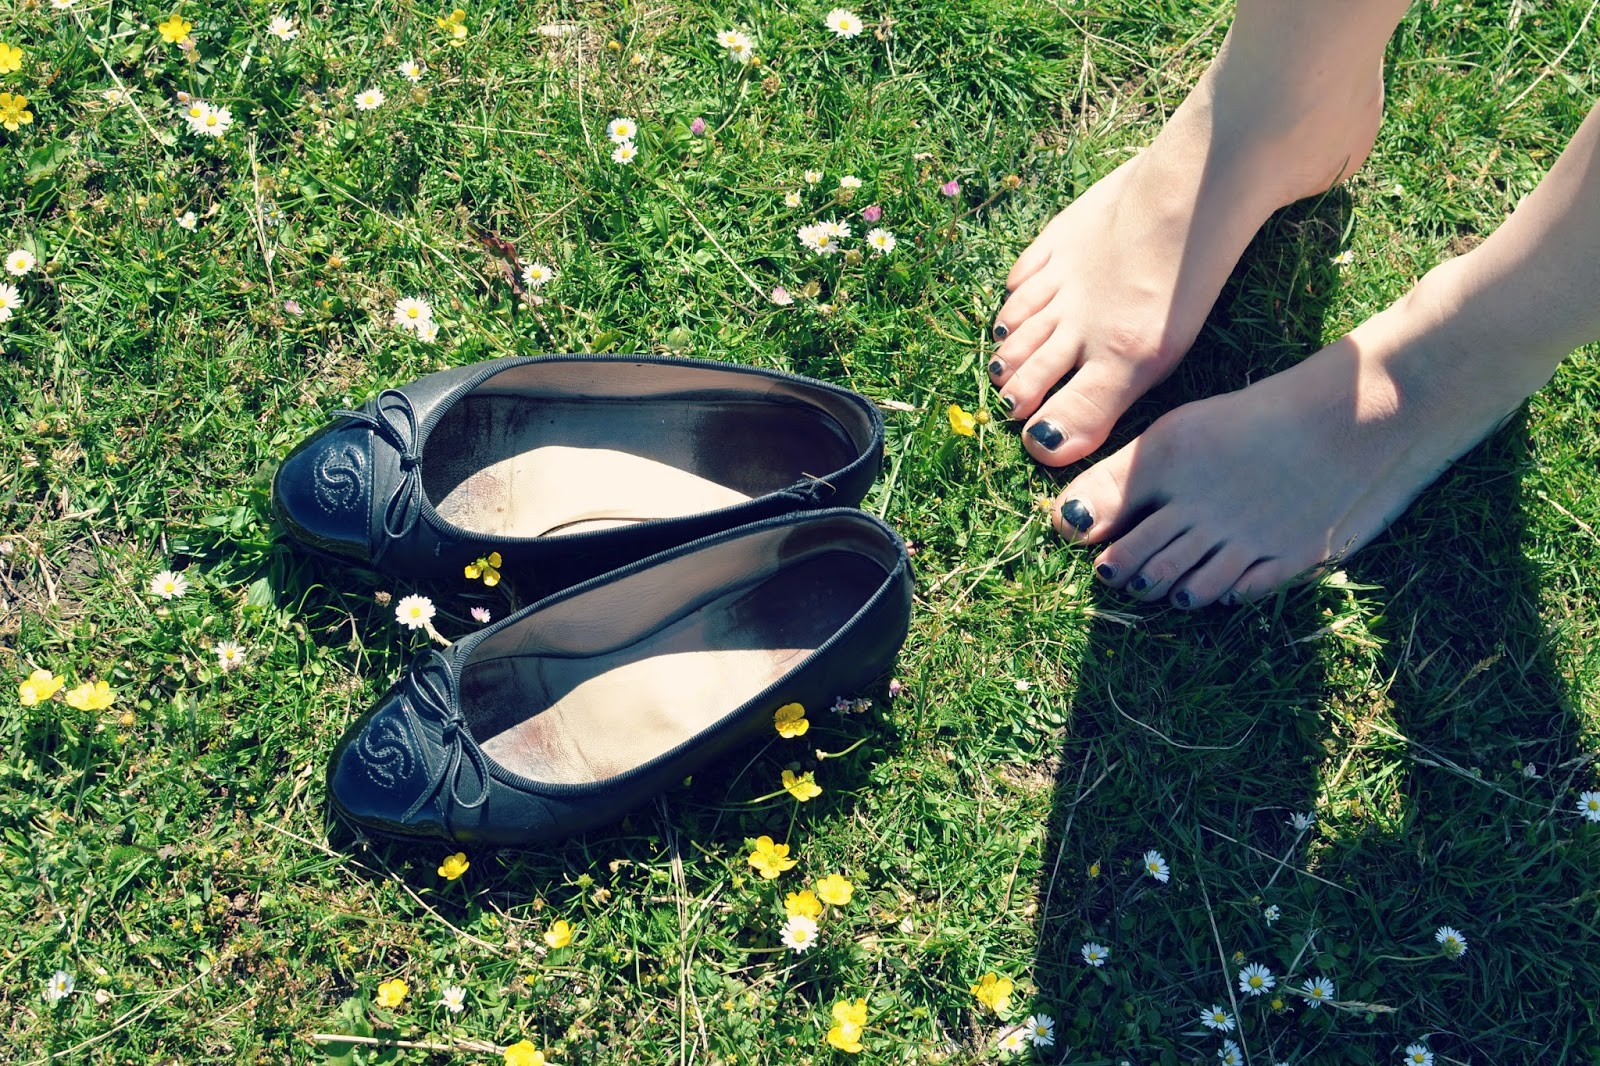 chanel shoes flowers festival outdoors sunshine